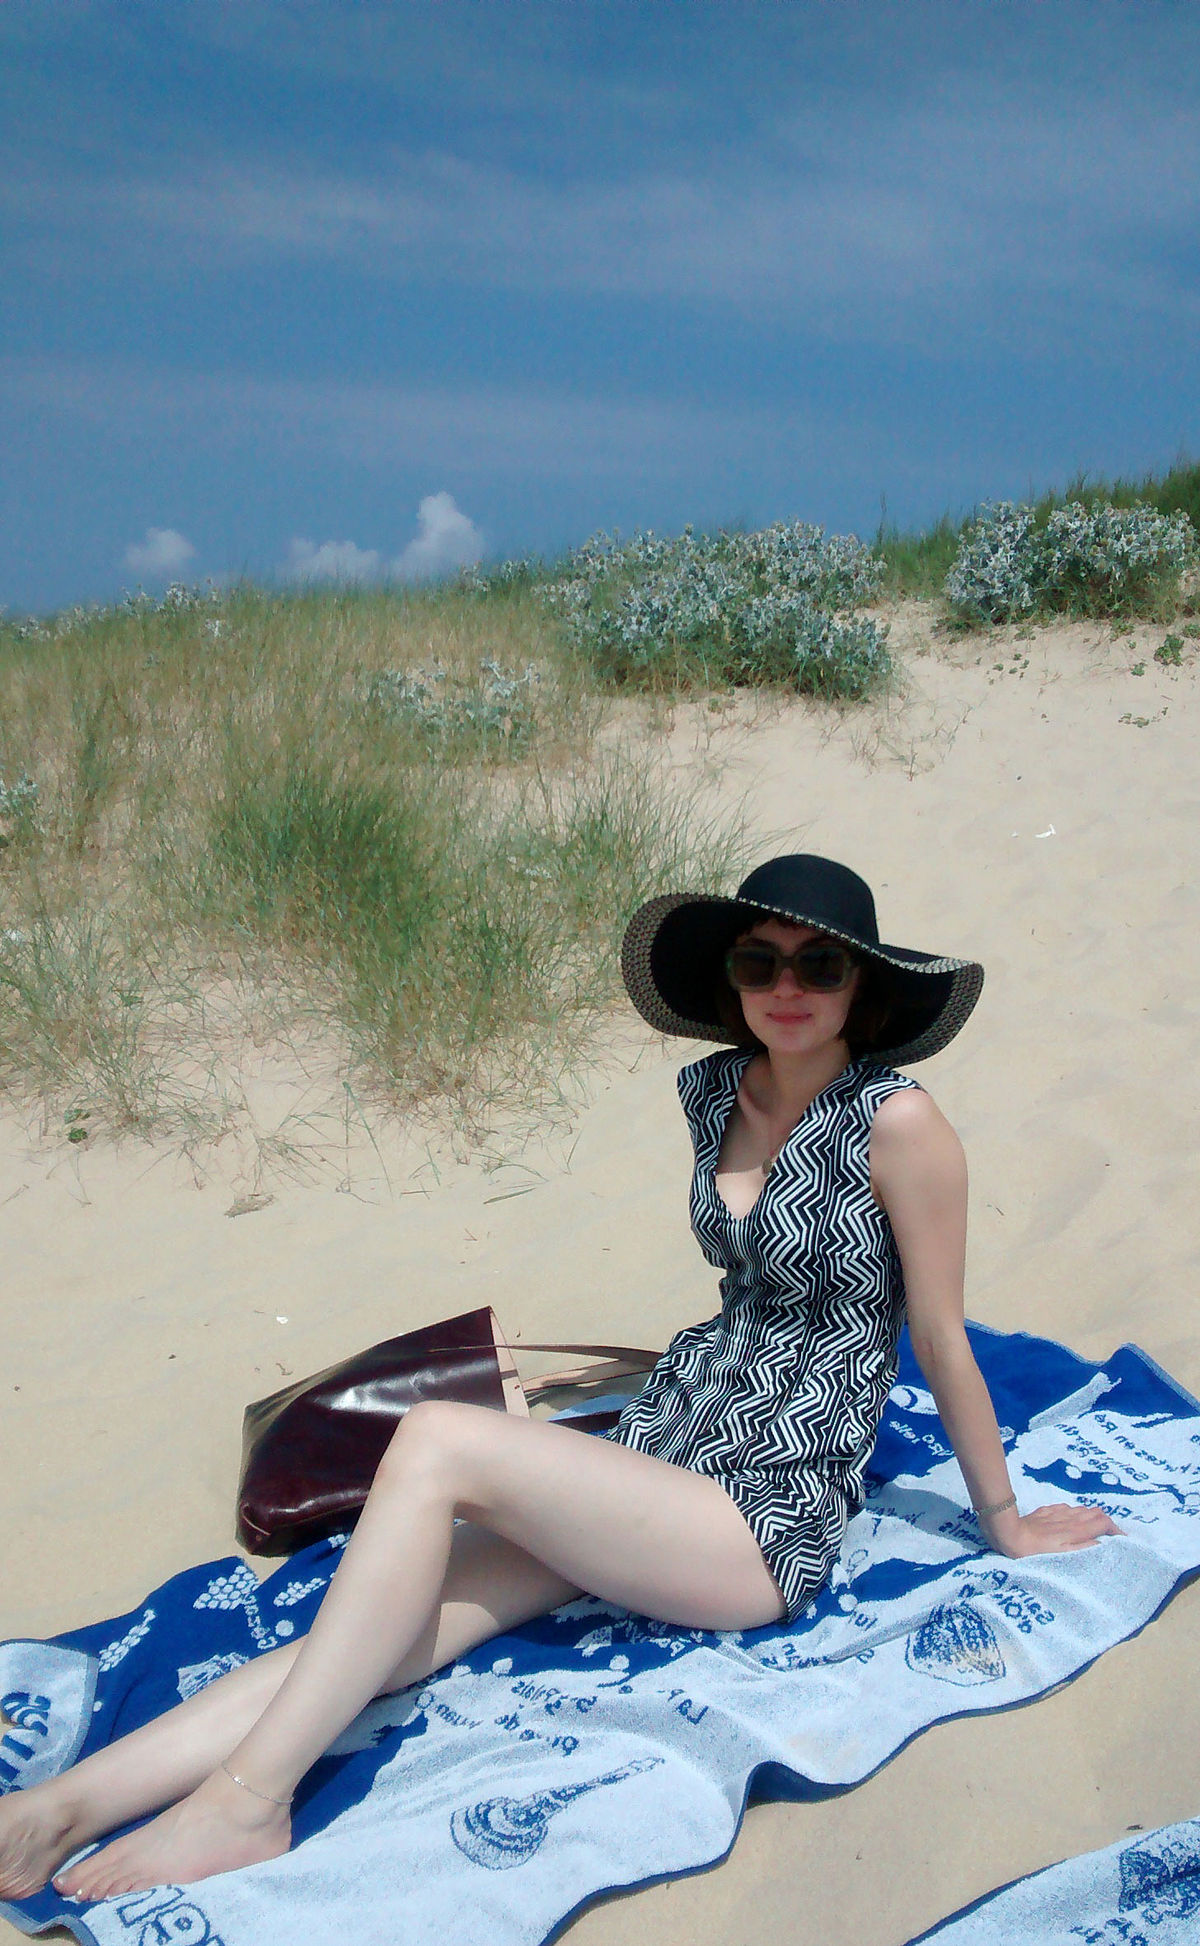 1200px-Lady_in_summer_playsuit.jpg